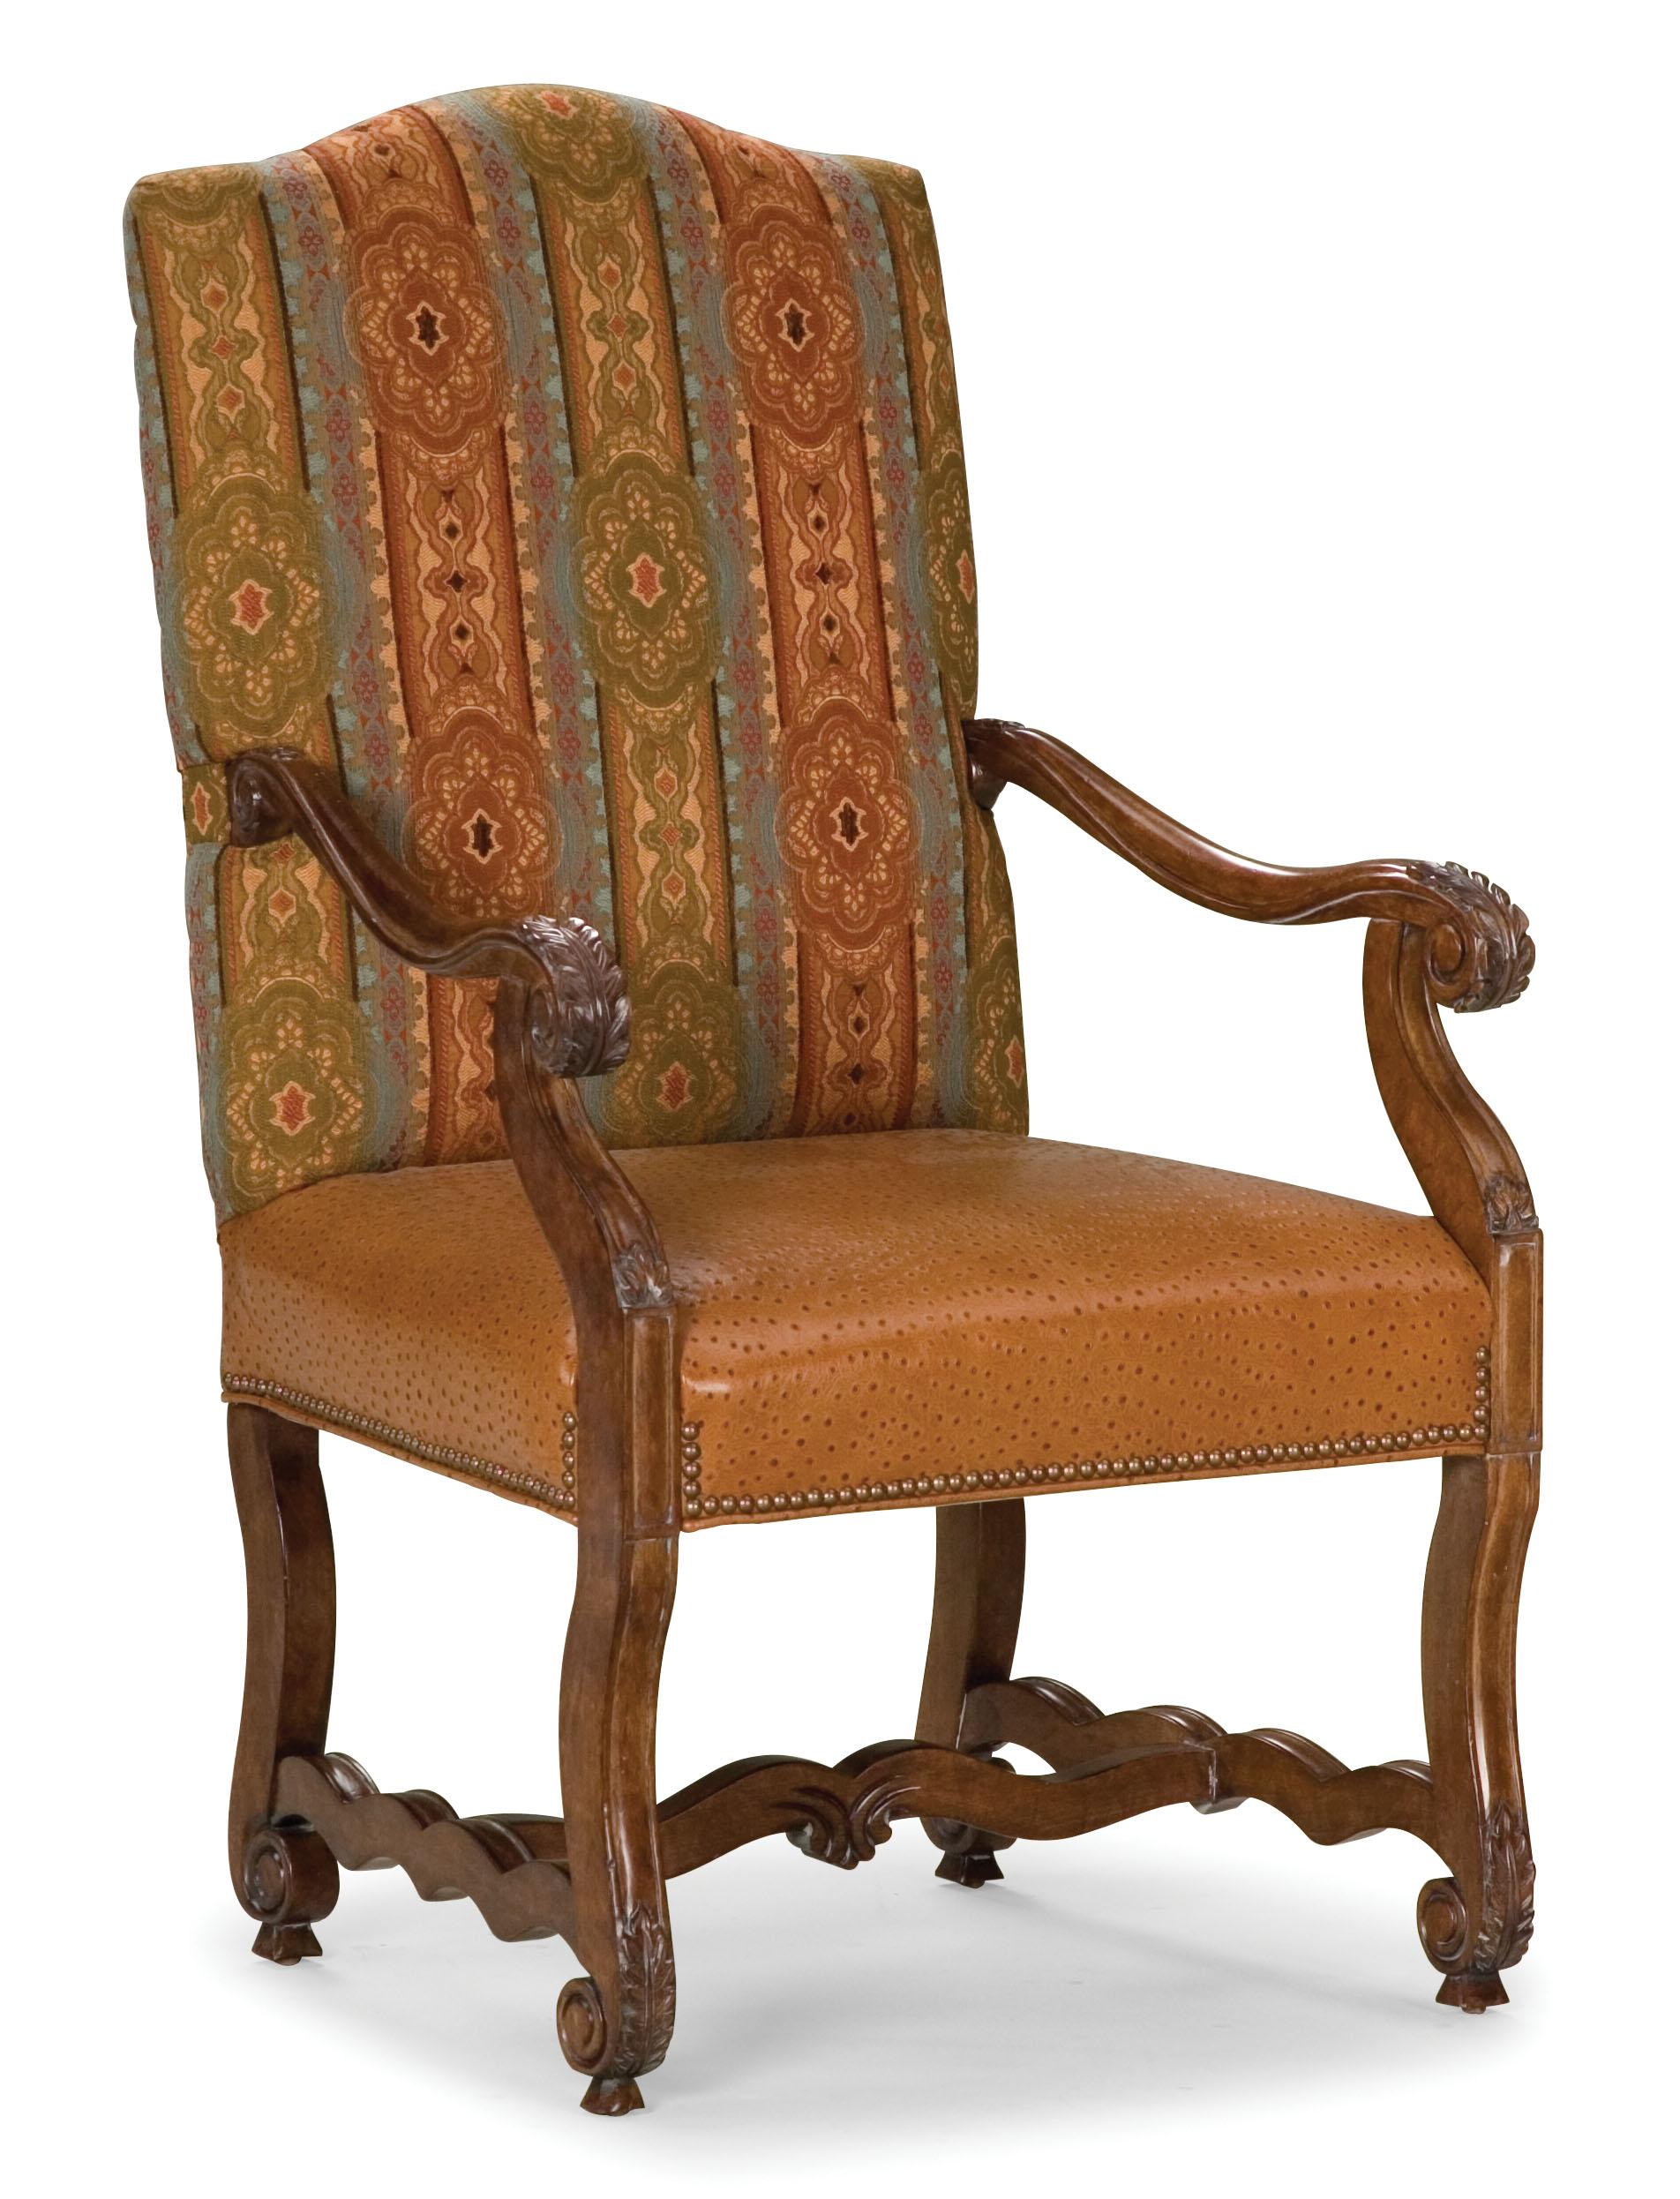 fairfield chair company reviews old chairs for sale 5409 04 exposed wood accent with